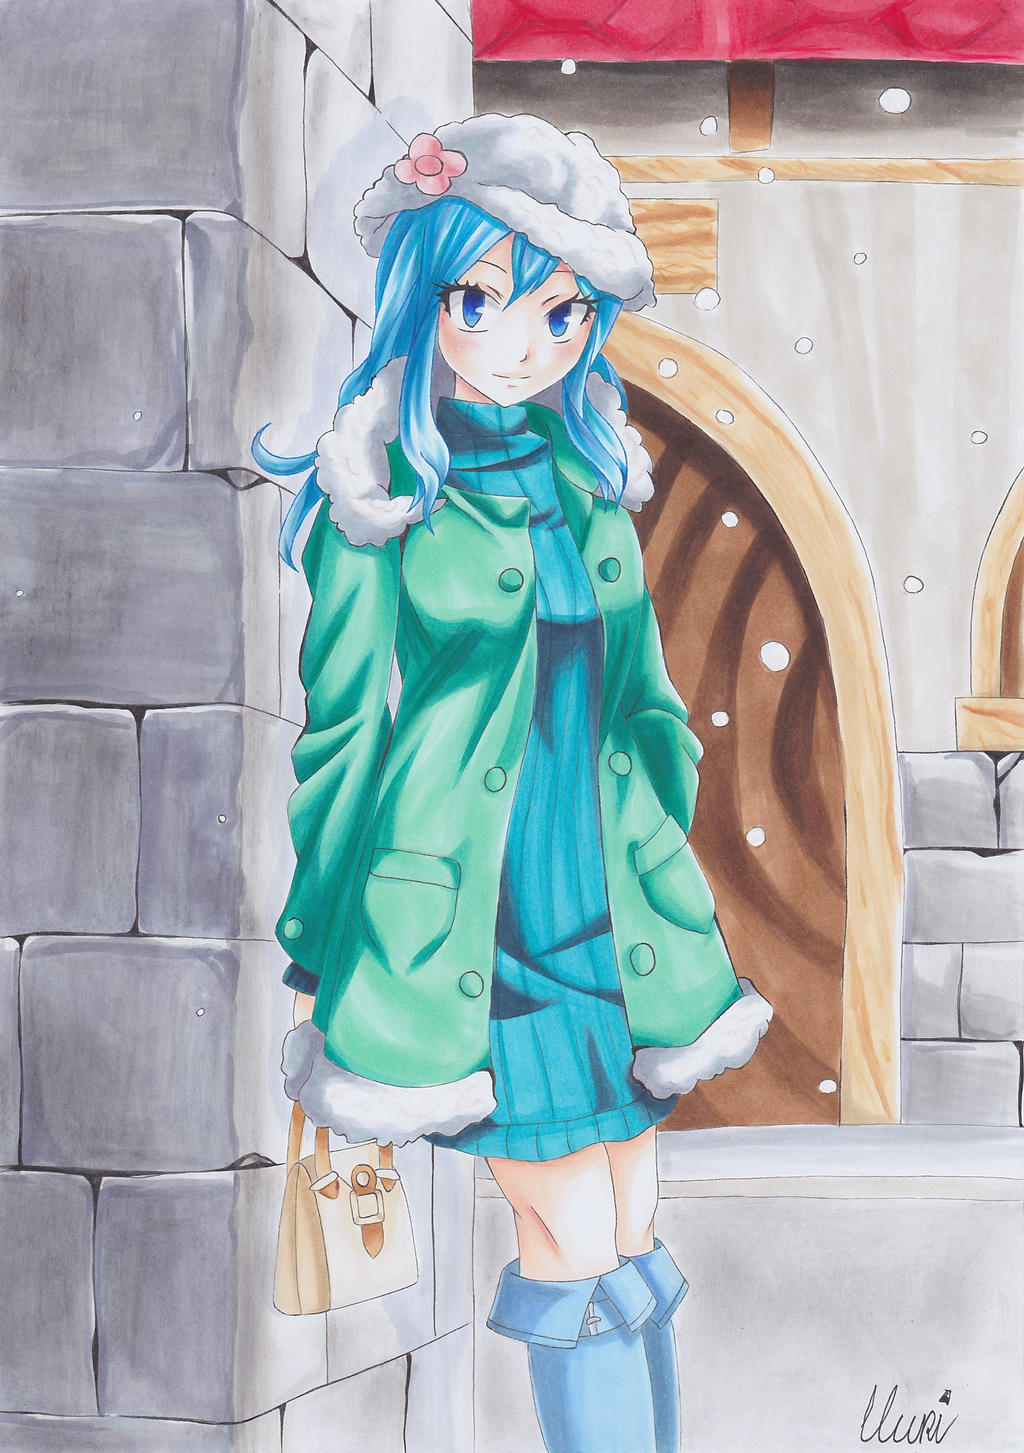 Juvia ~ waiting in the snow by CrystalMelody-FT